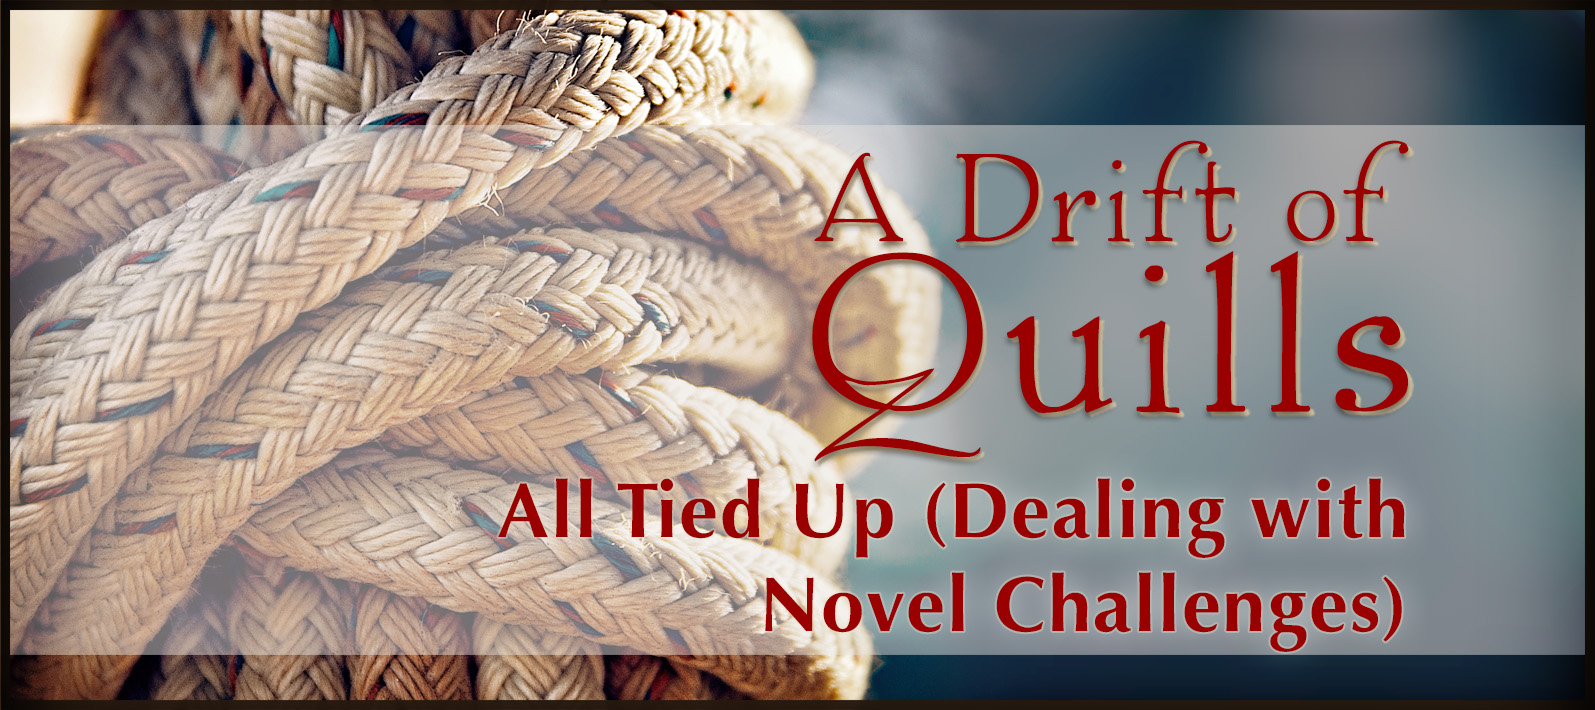 Dealing with novel challenges is nothing new for A Drift of Quills.Here's a day-in-thelife. What has been the biggest writing challenge with our current novel? (https://robinlythgoe.com)